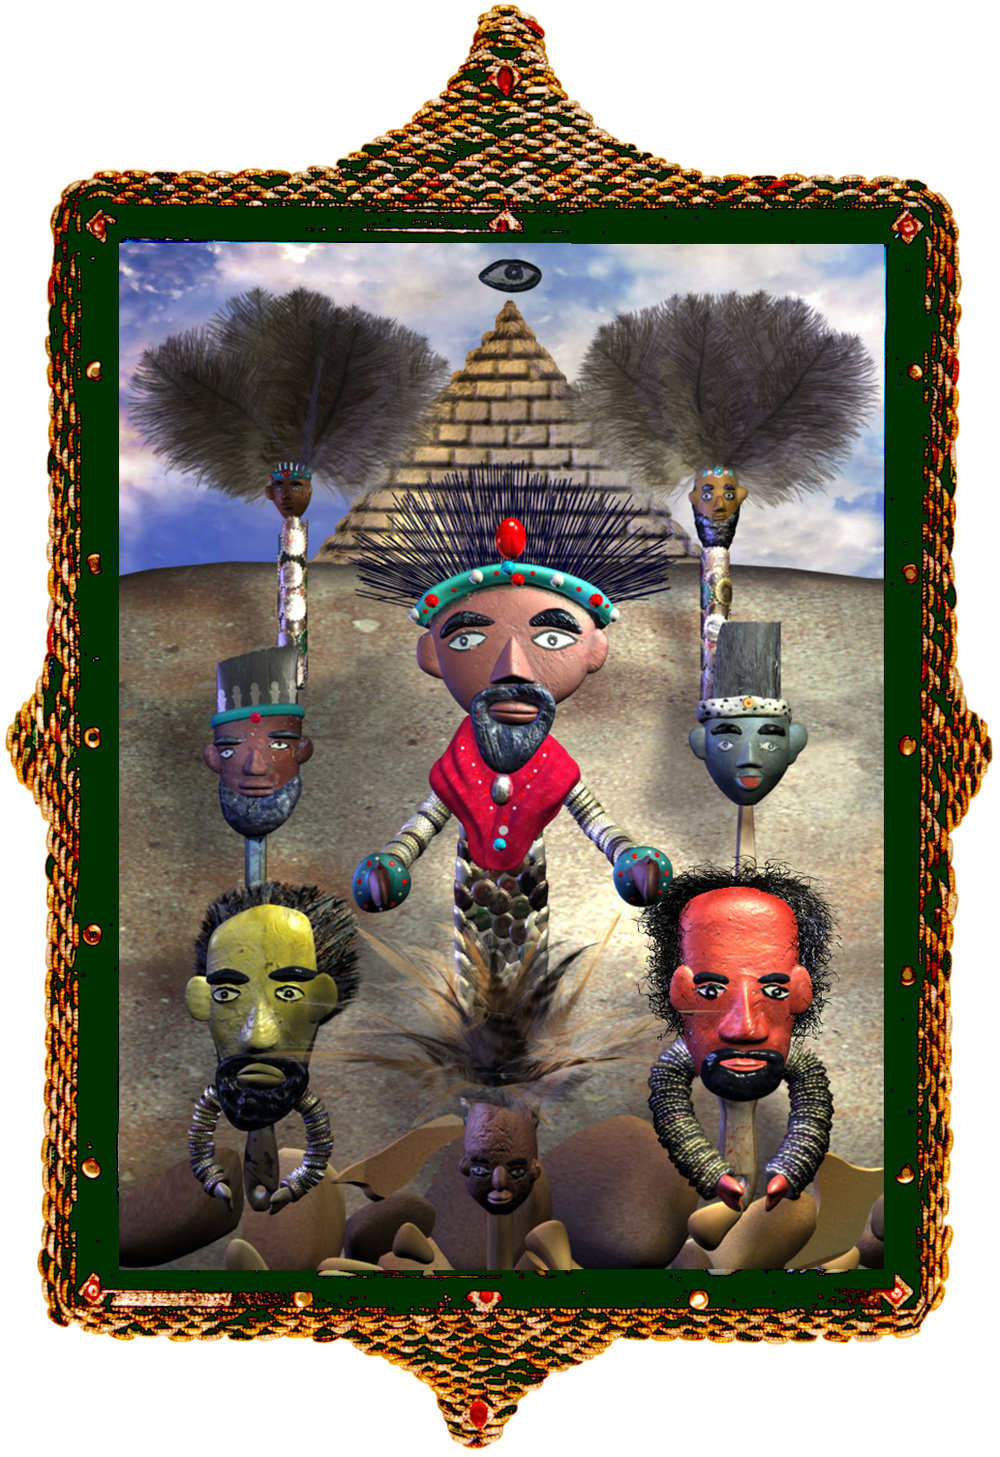 The Third Eye of Mr. I., 2002